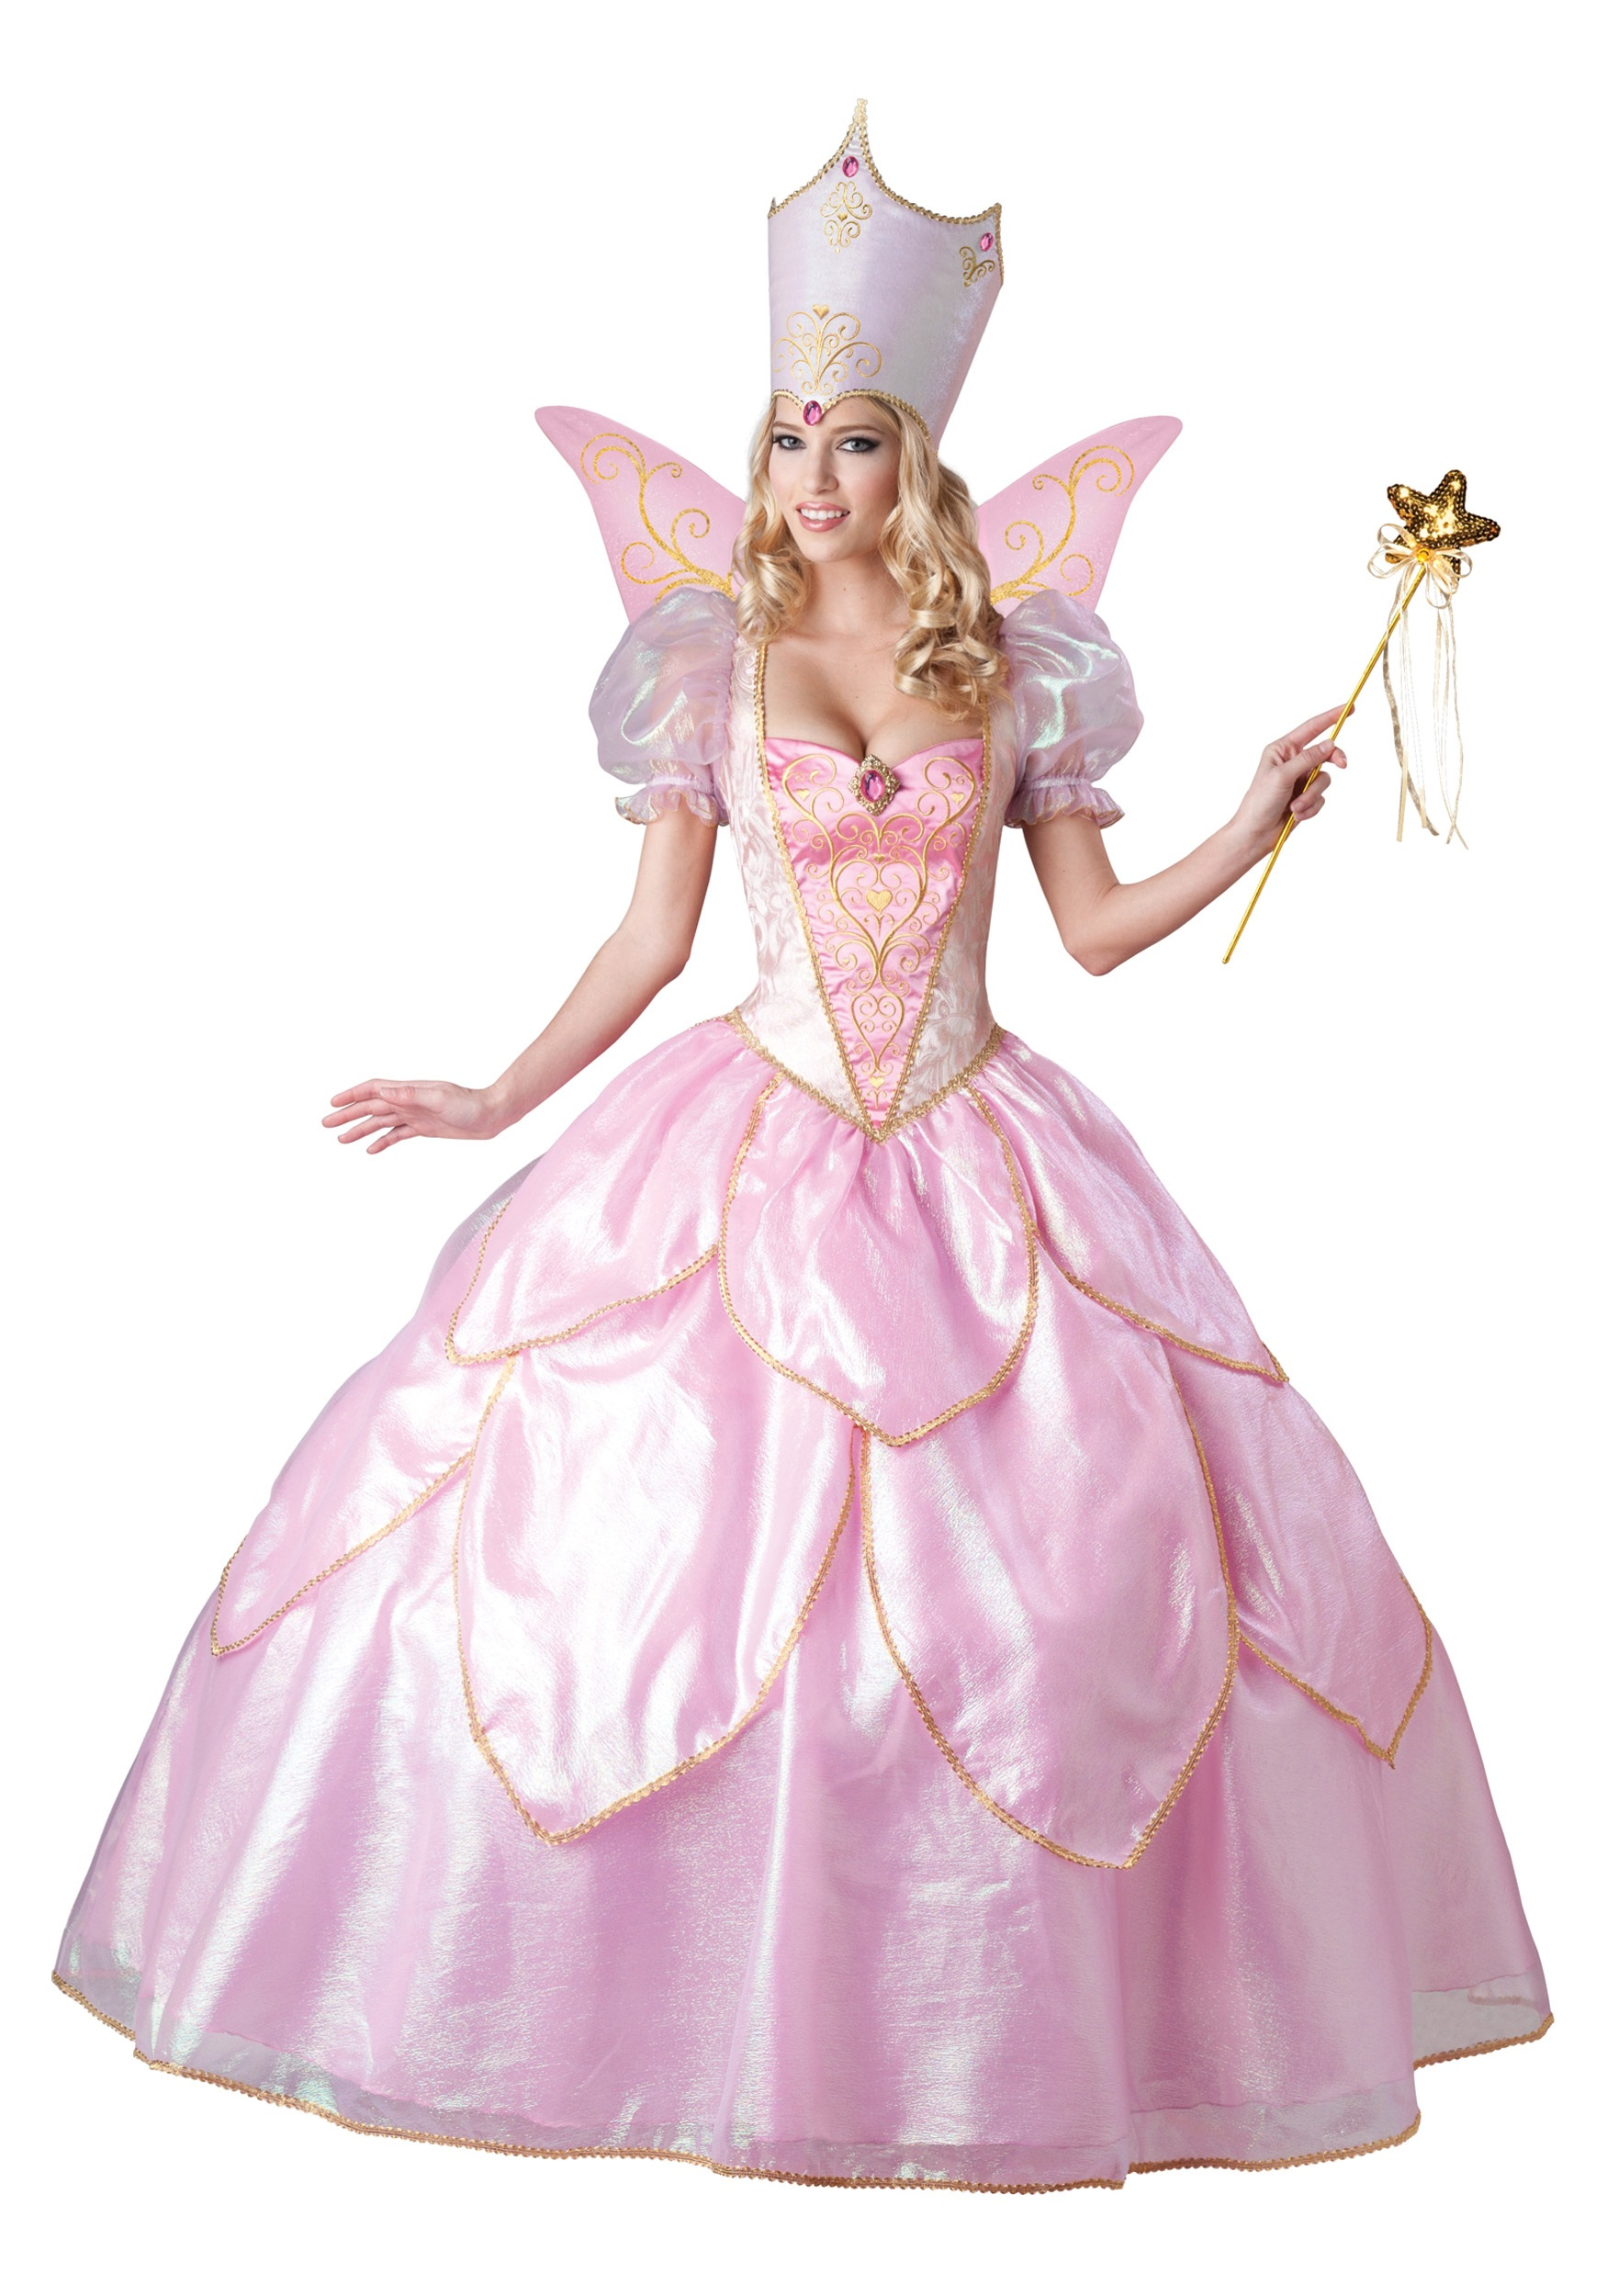 ... dress garden fairy kids woodland little fairy · diy ...  sc 1 st  Best Kids Costumes & Tooth Fairy Costume Kids - Best Kids Costumes